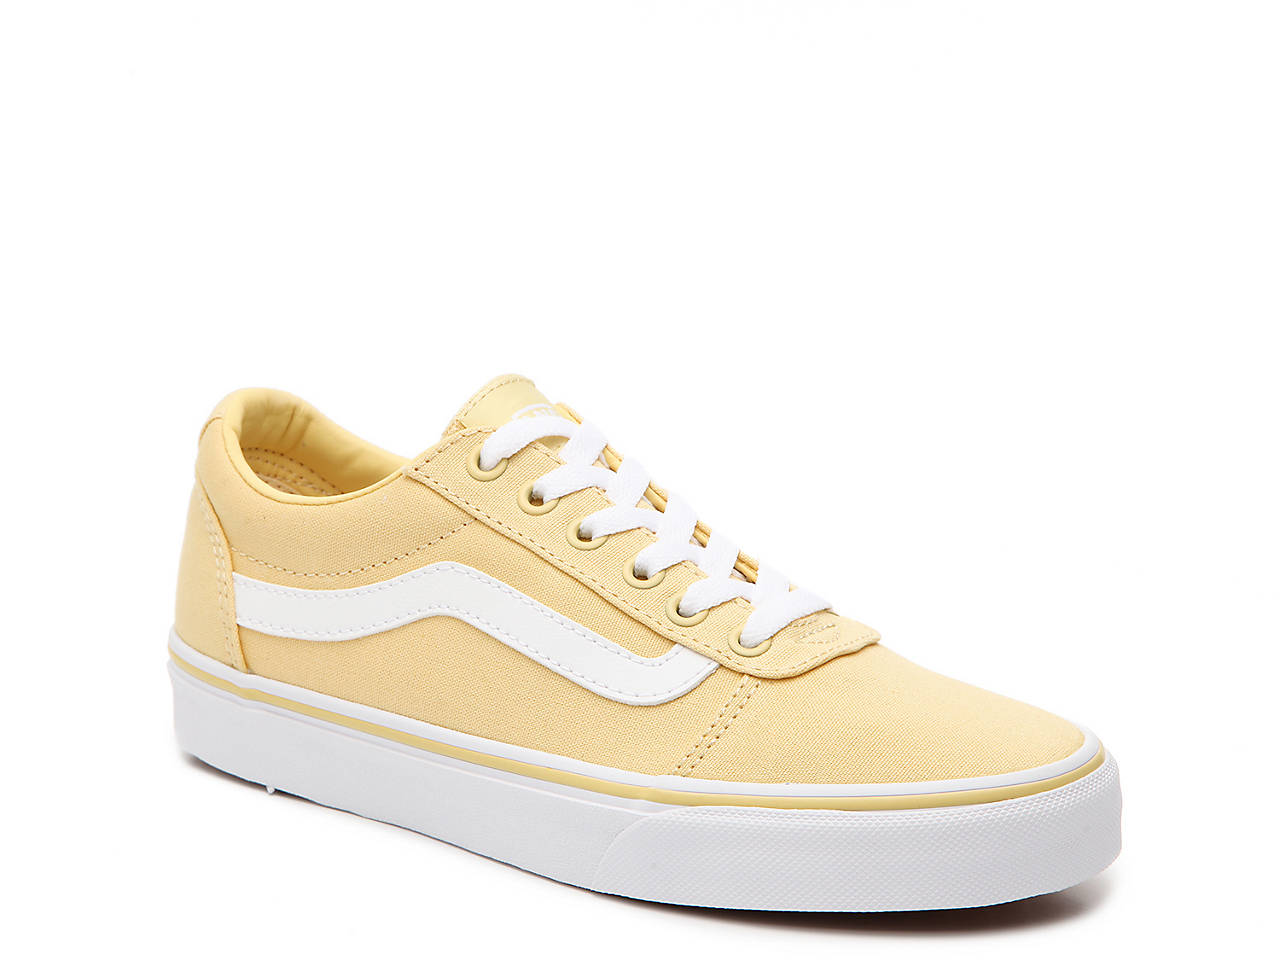 d9be28f117 Vans Ward Lo Sneaker - Women s Women s Shoes